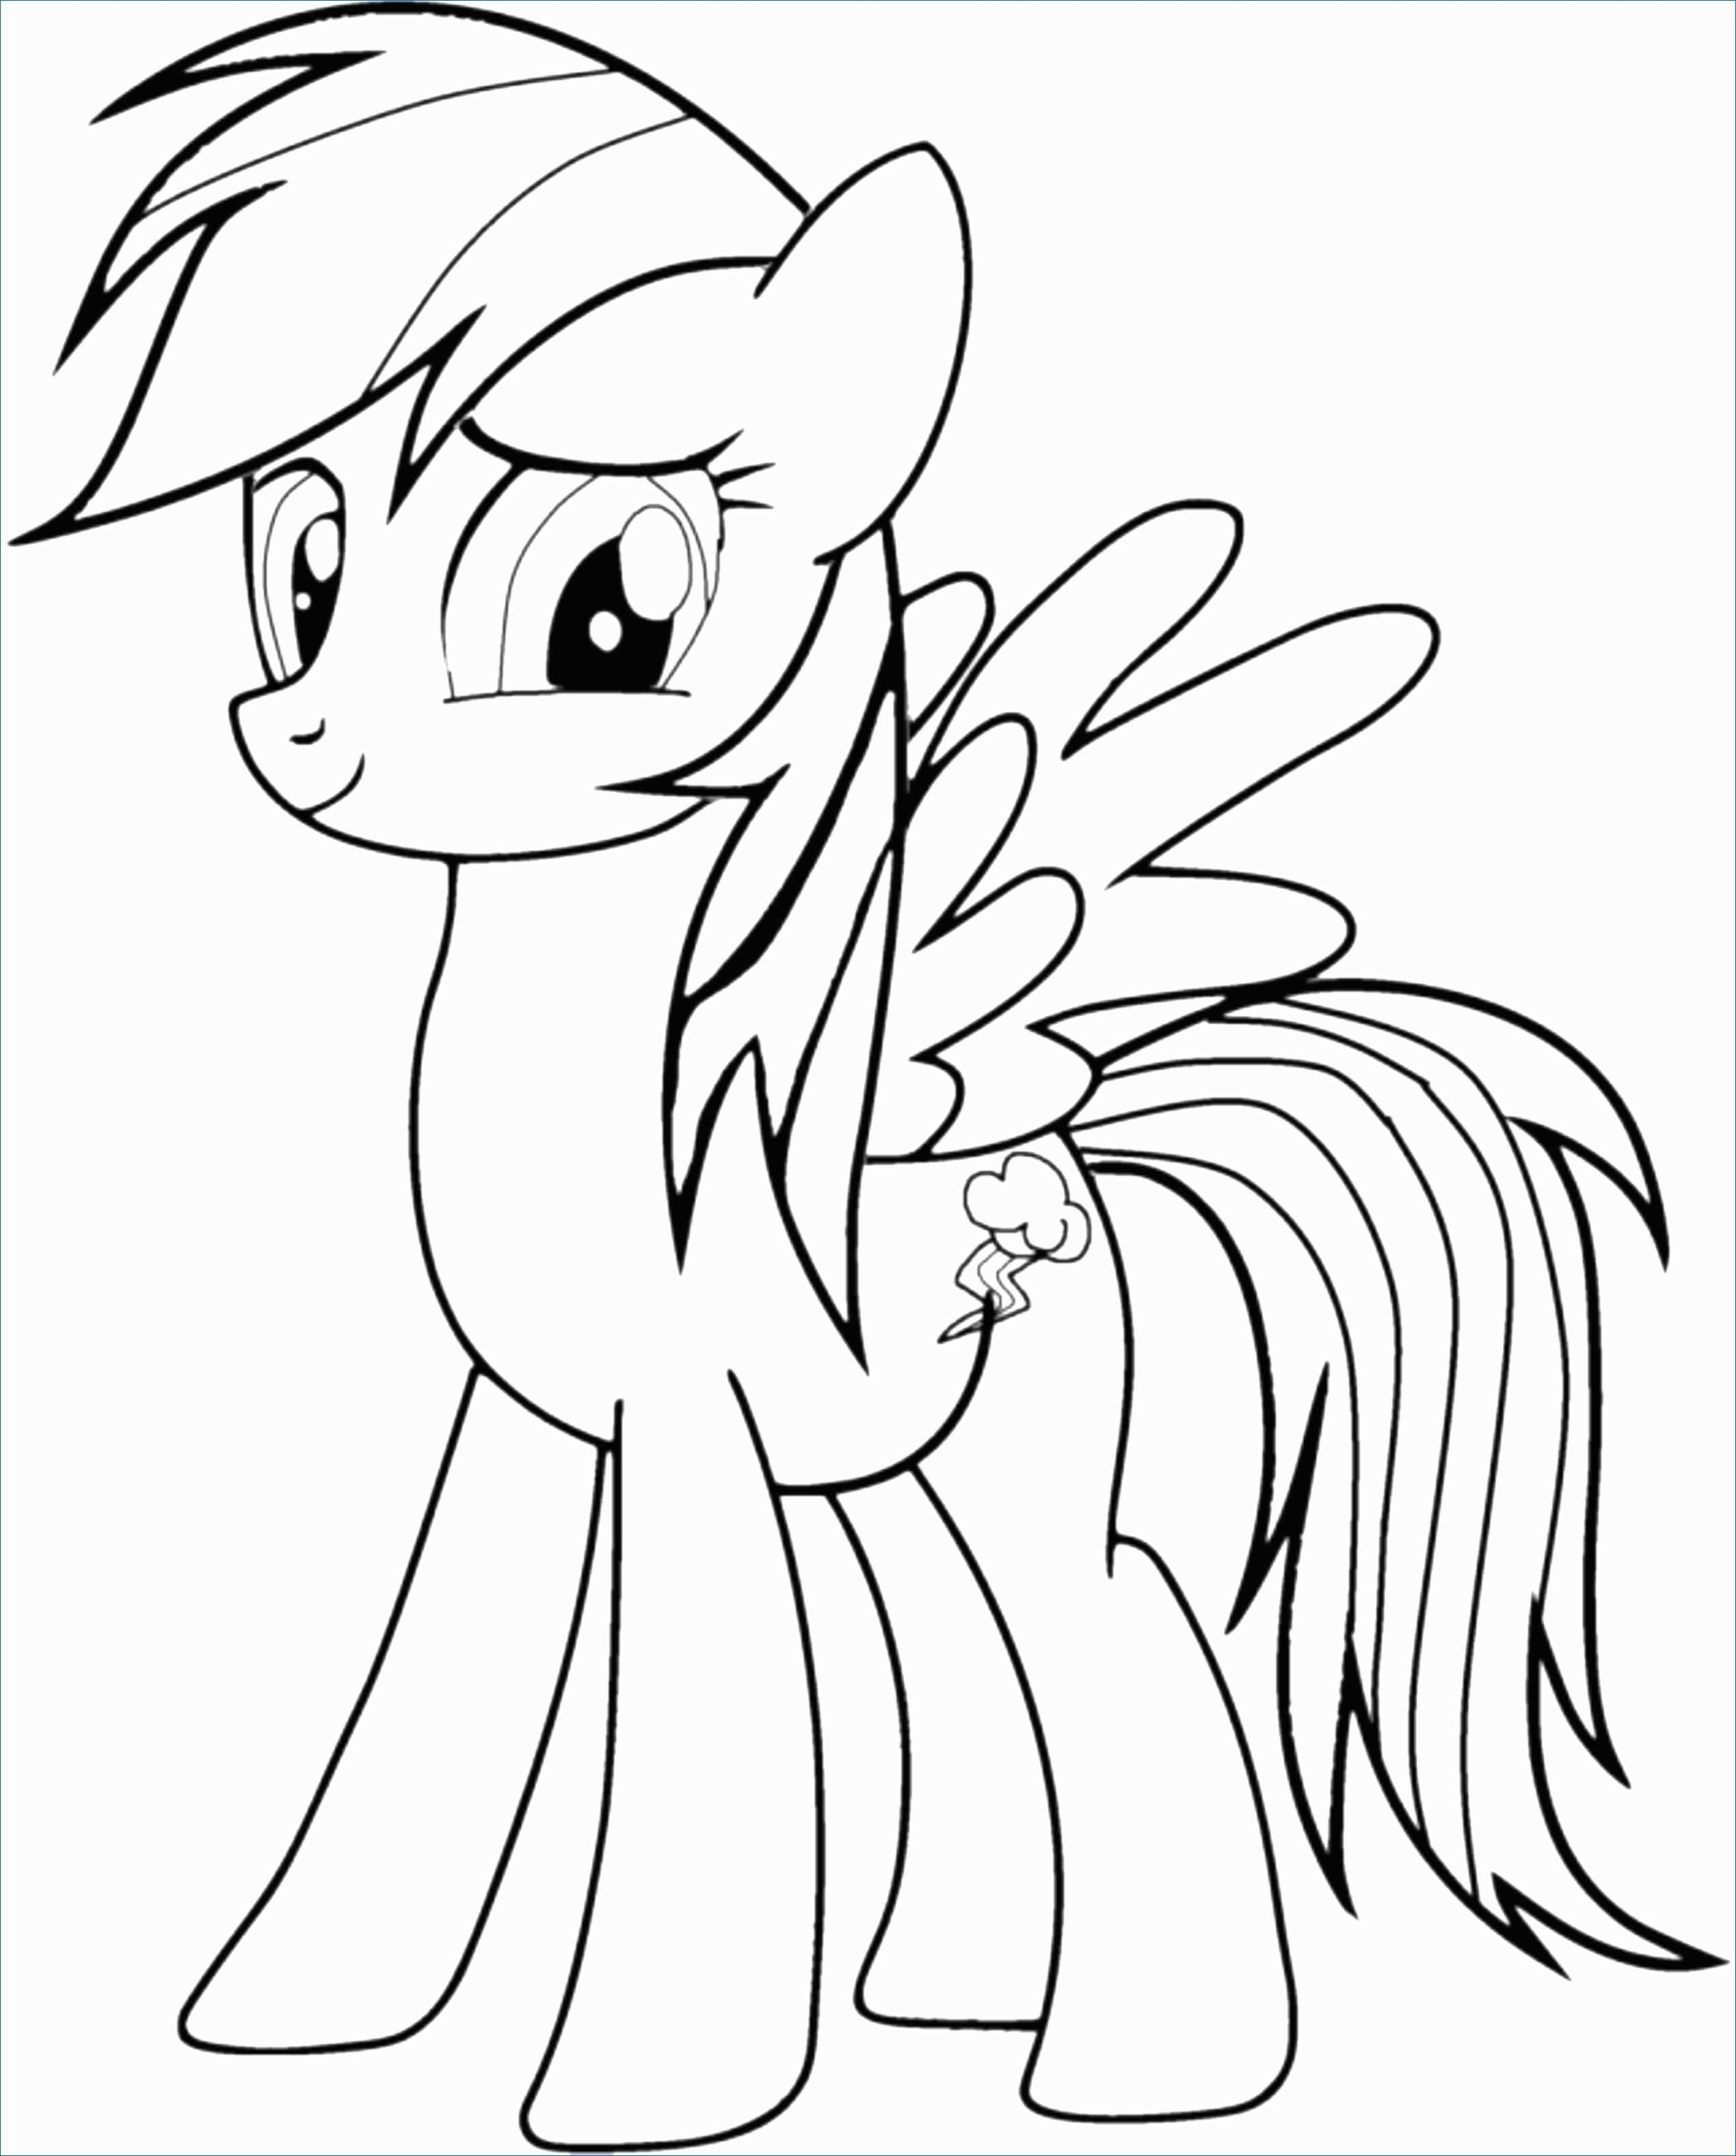 Twilight Sparkle Coloring Pages Lovely Twilight Sparkle Coloring Page In 2020 My Little Pony Coloring Horse Coloring Pages Cartoon Coloring Pages